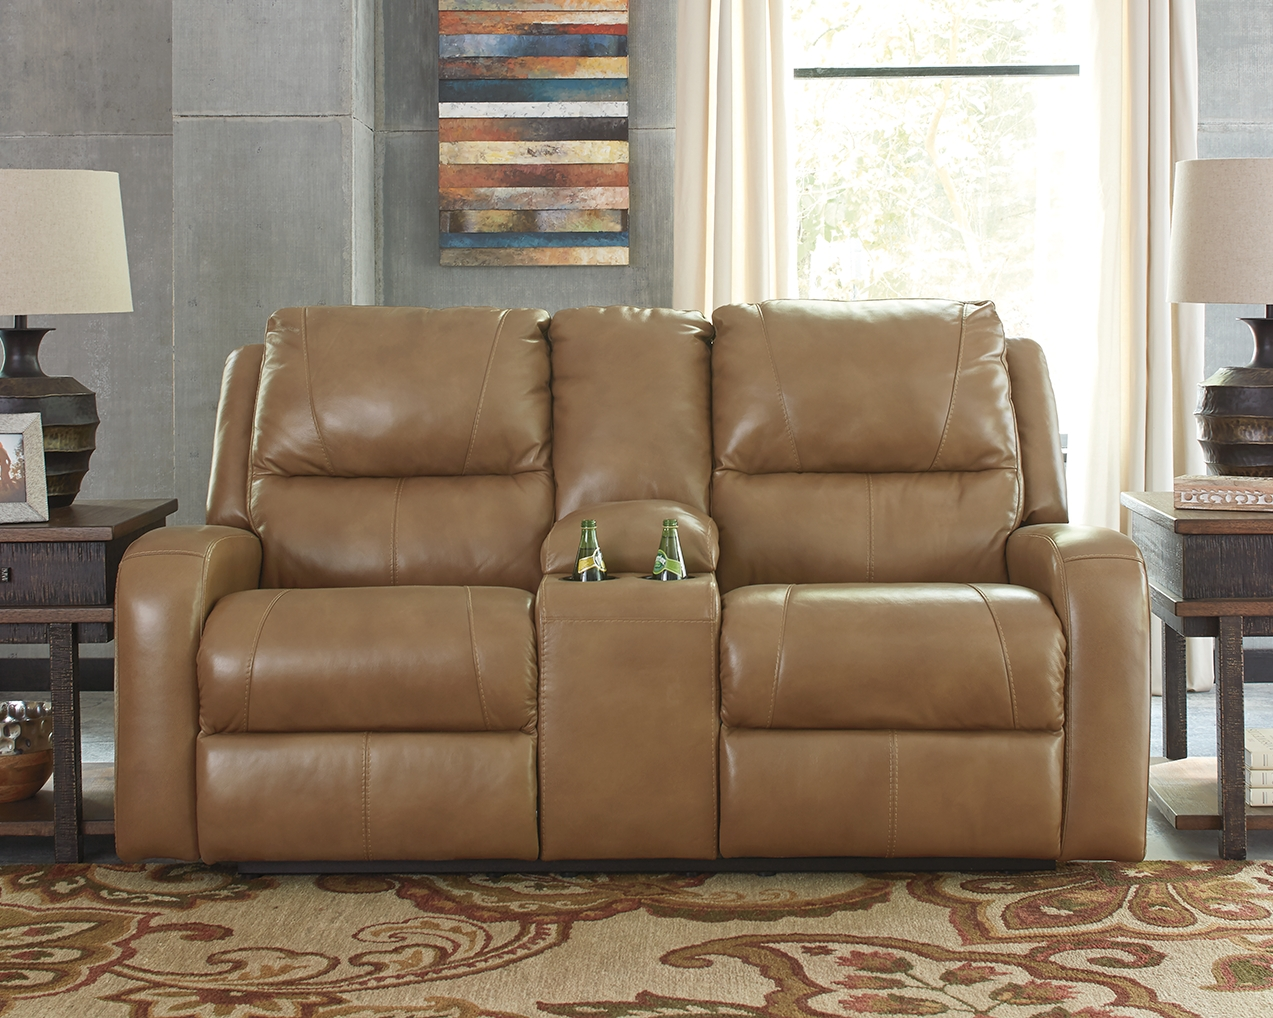 Strange Roogan Reclining Loveseat With Console Blondie Leather Gmtry Best Dining Table And Chair Ideas Images Gmtryco